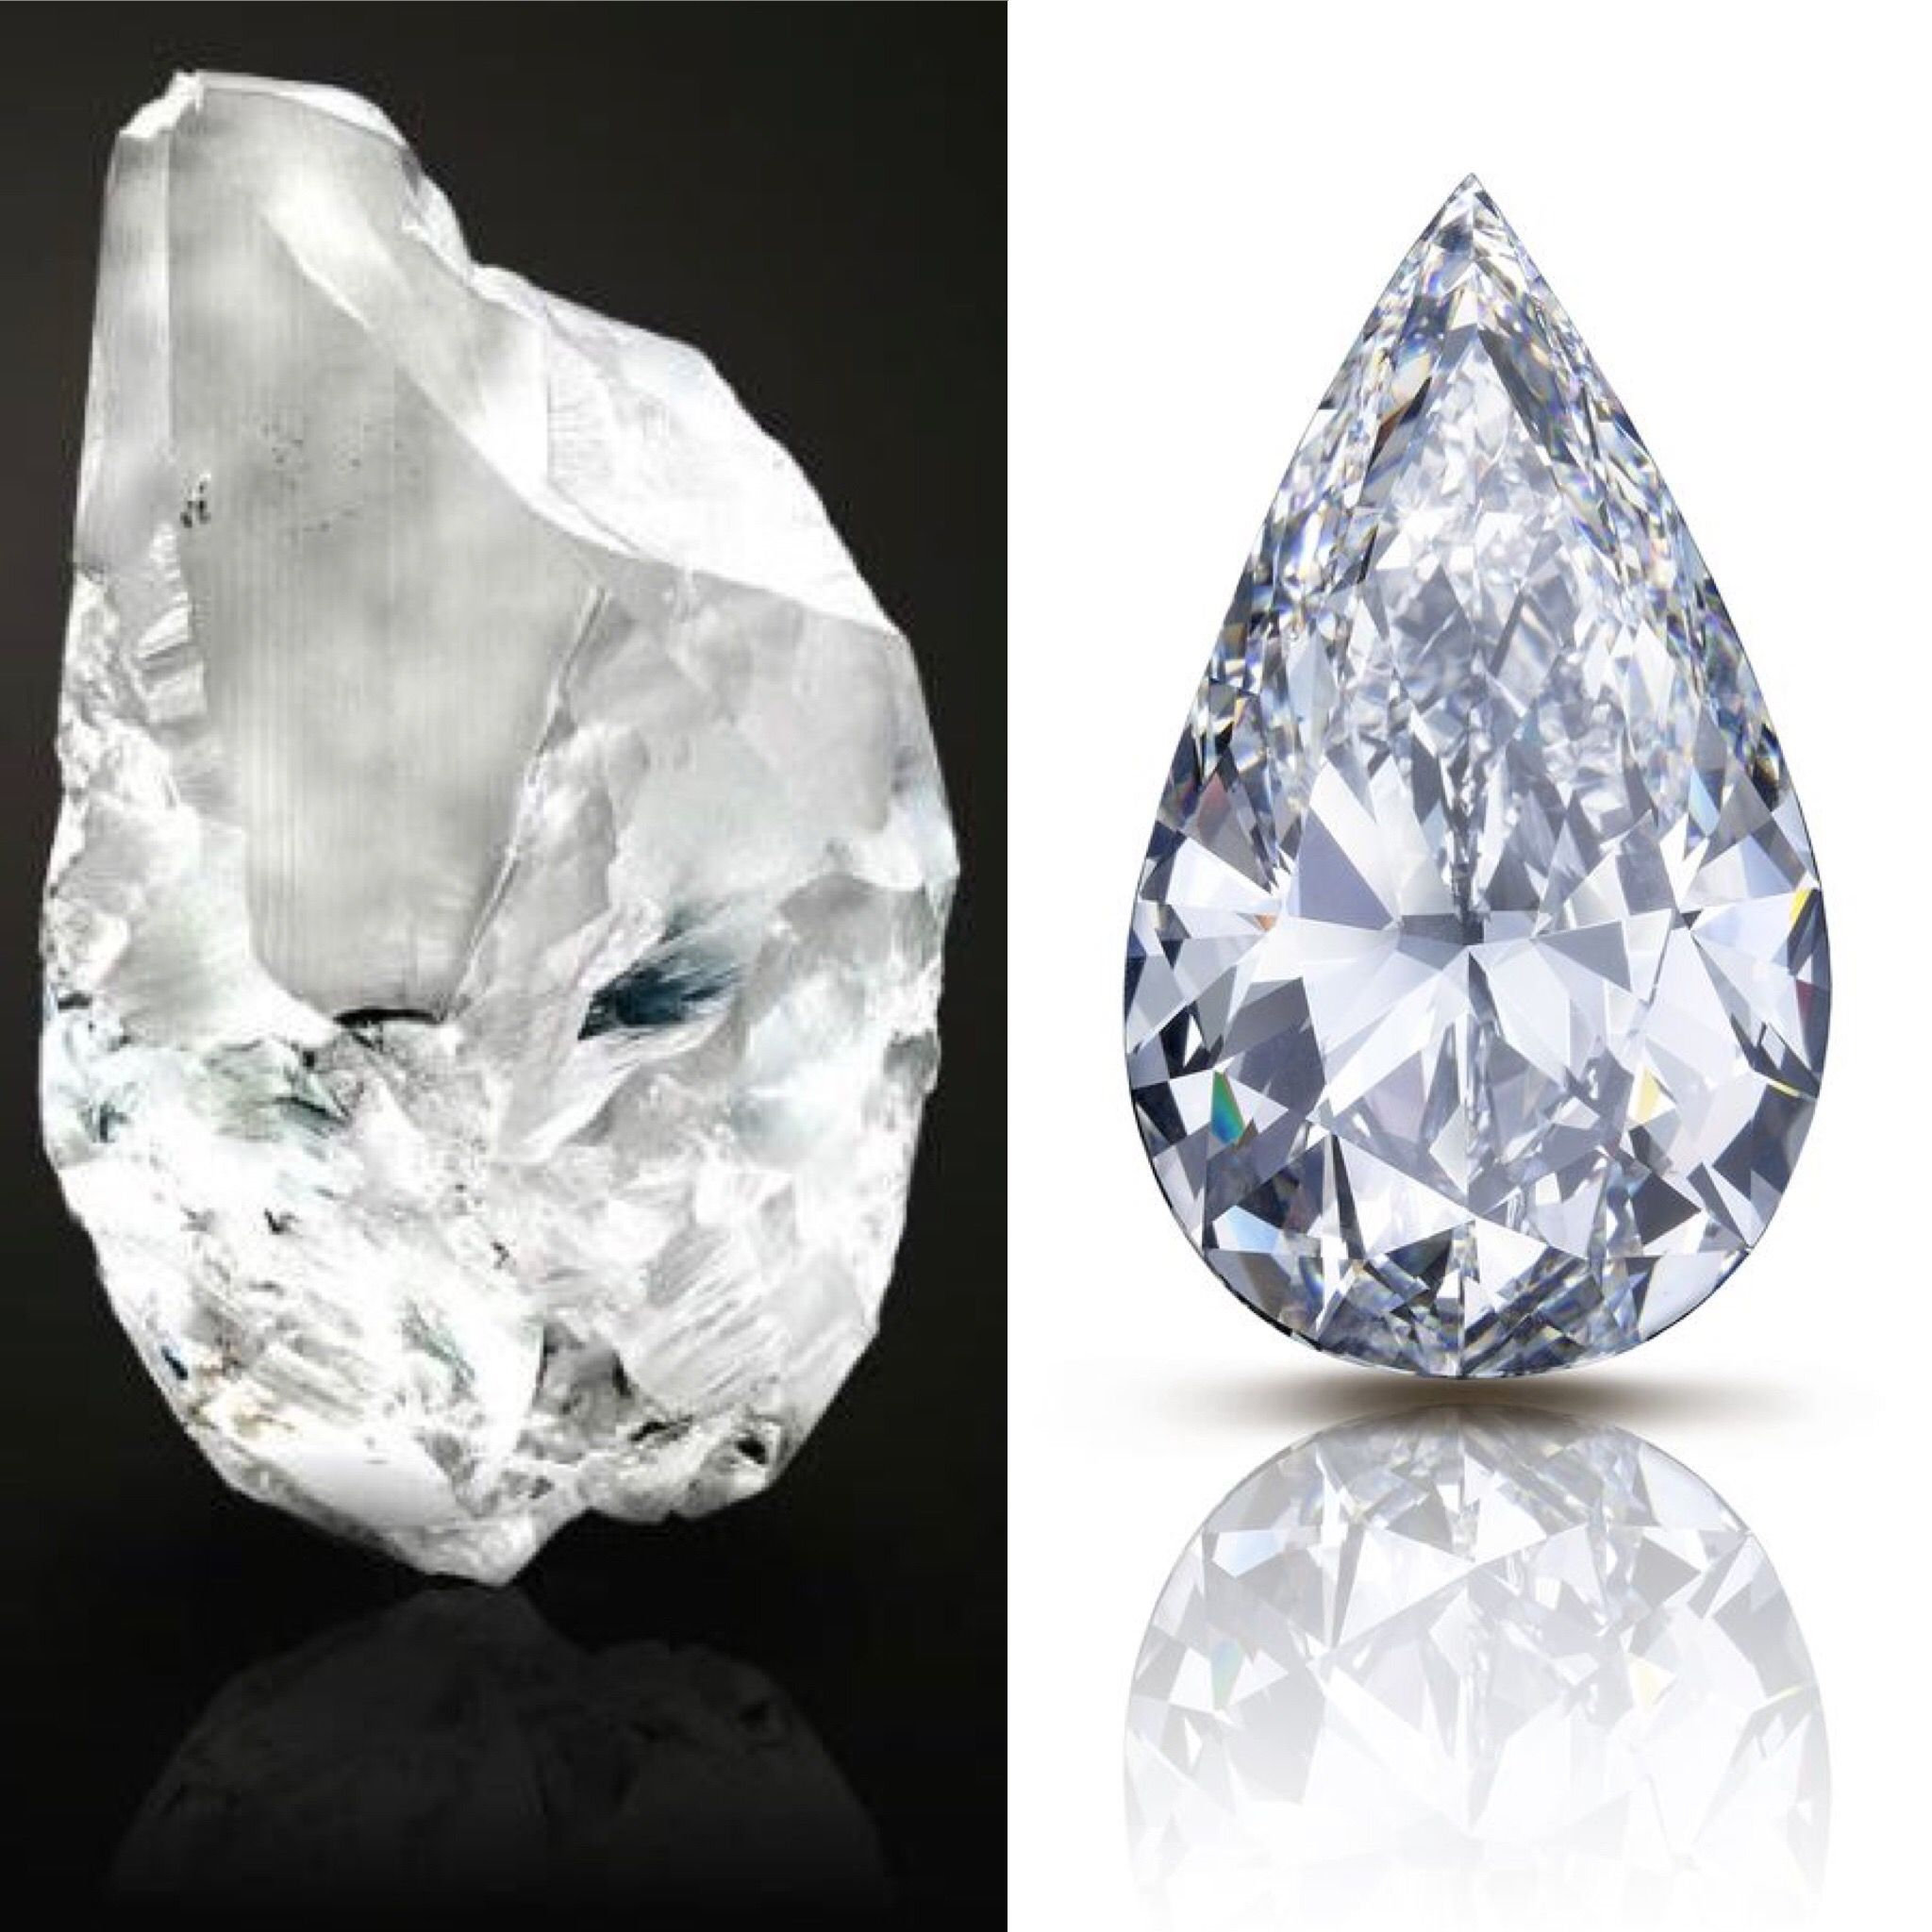 christies estimated oppenheimer img jewelry picks kensington gold south stone gemologue auction christie top single s an diamond zh ring at